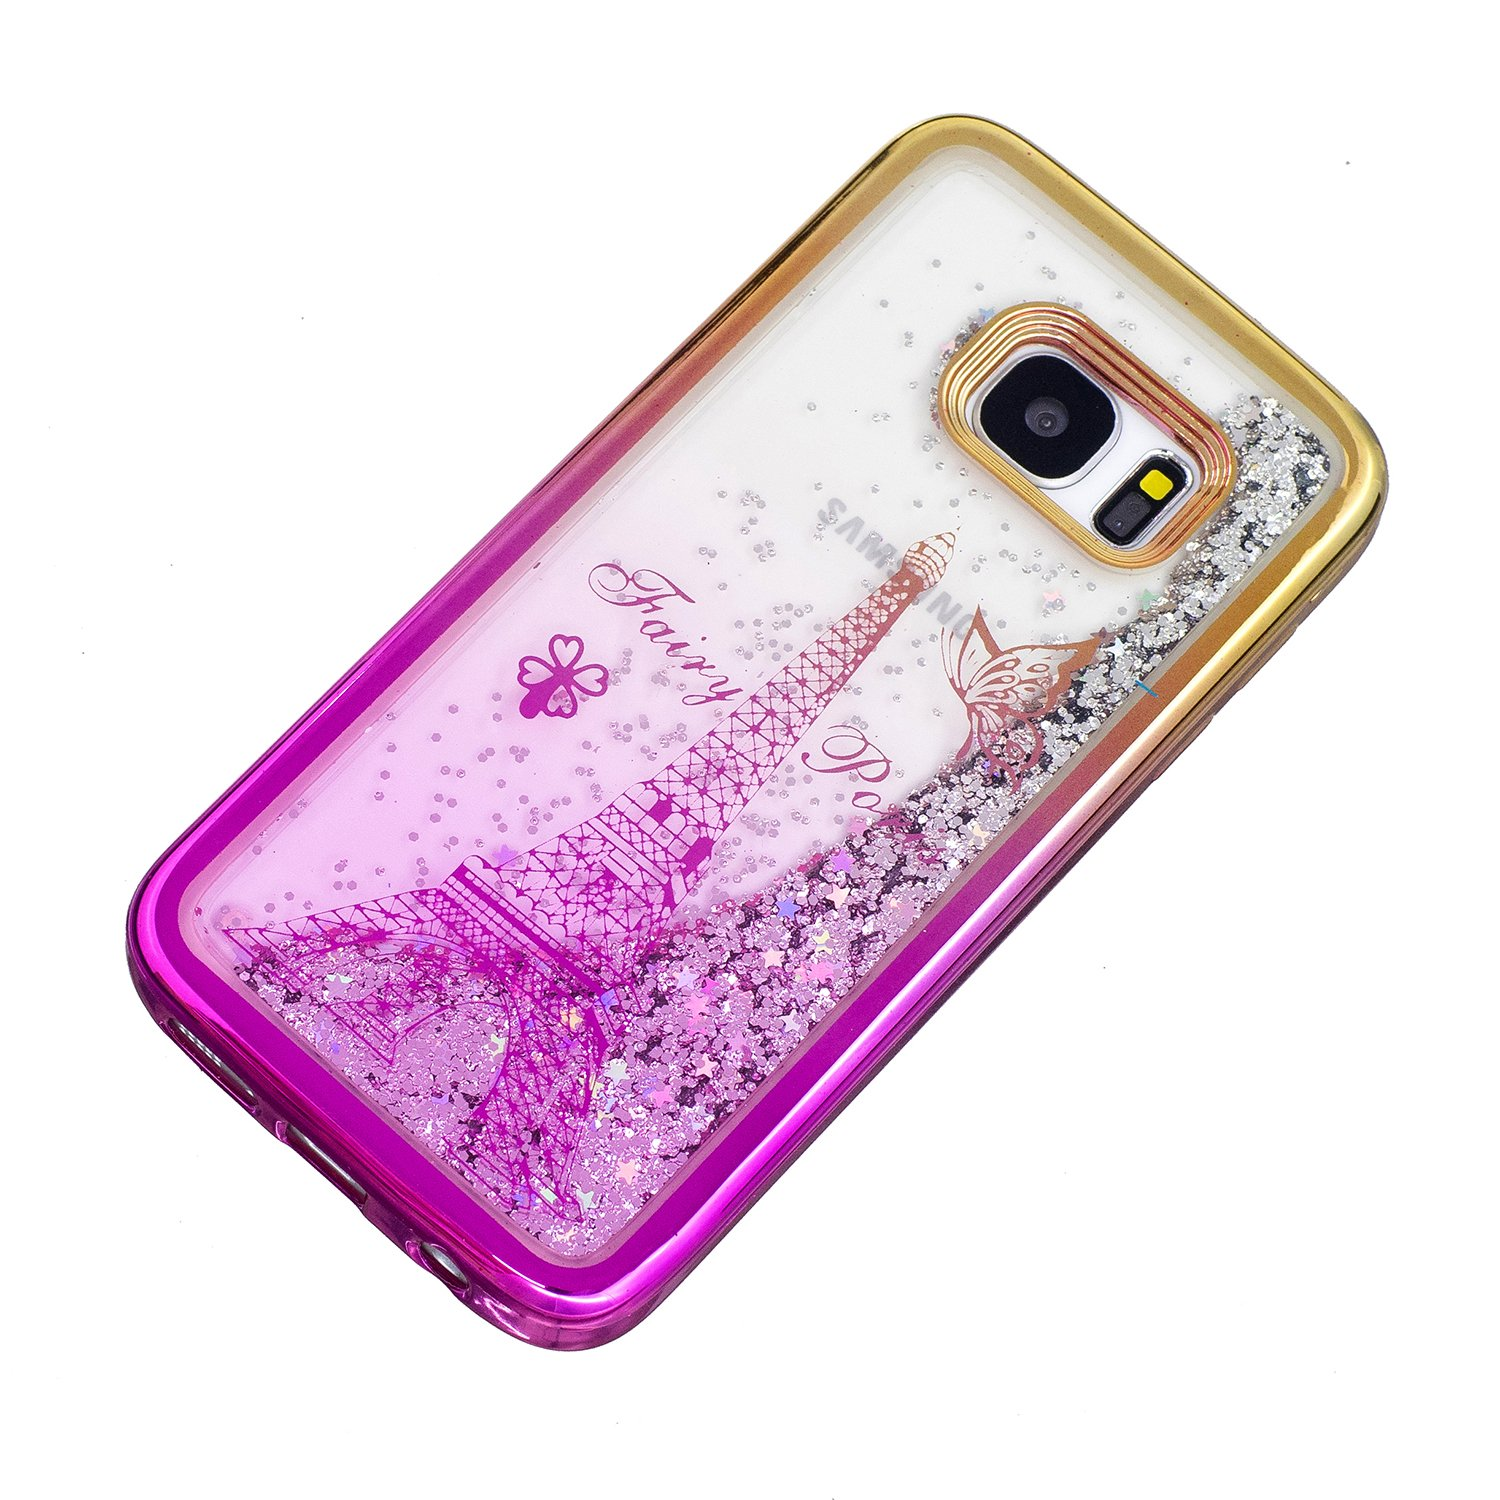 Liquid Clear Case for Samsung Galaxy S7 Edge,Glitter TPU Cover for Samsung Galaxy S7 Edge,Herzzer Luxury [Butterfly Tower Pattern] Soft Flexible with Electroplated Frame Flowing Sparkle Love Heart Star Crystal Back Case